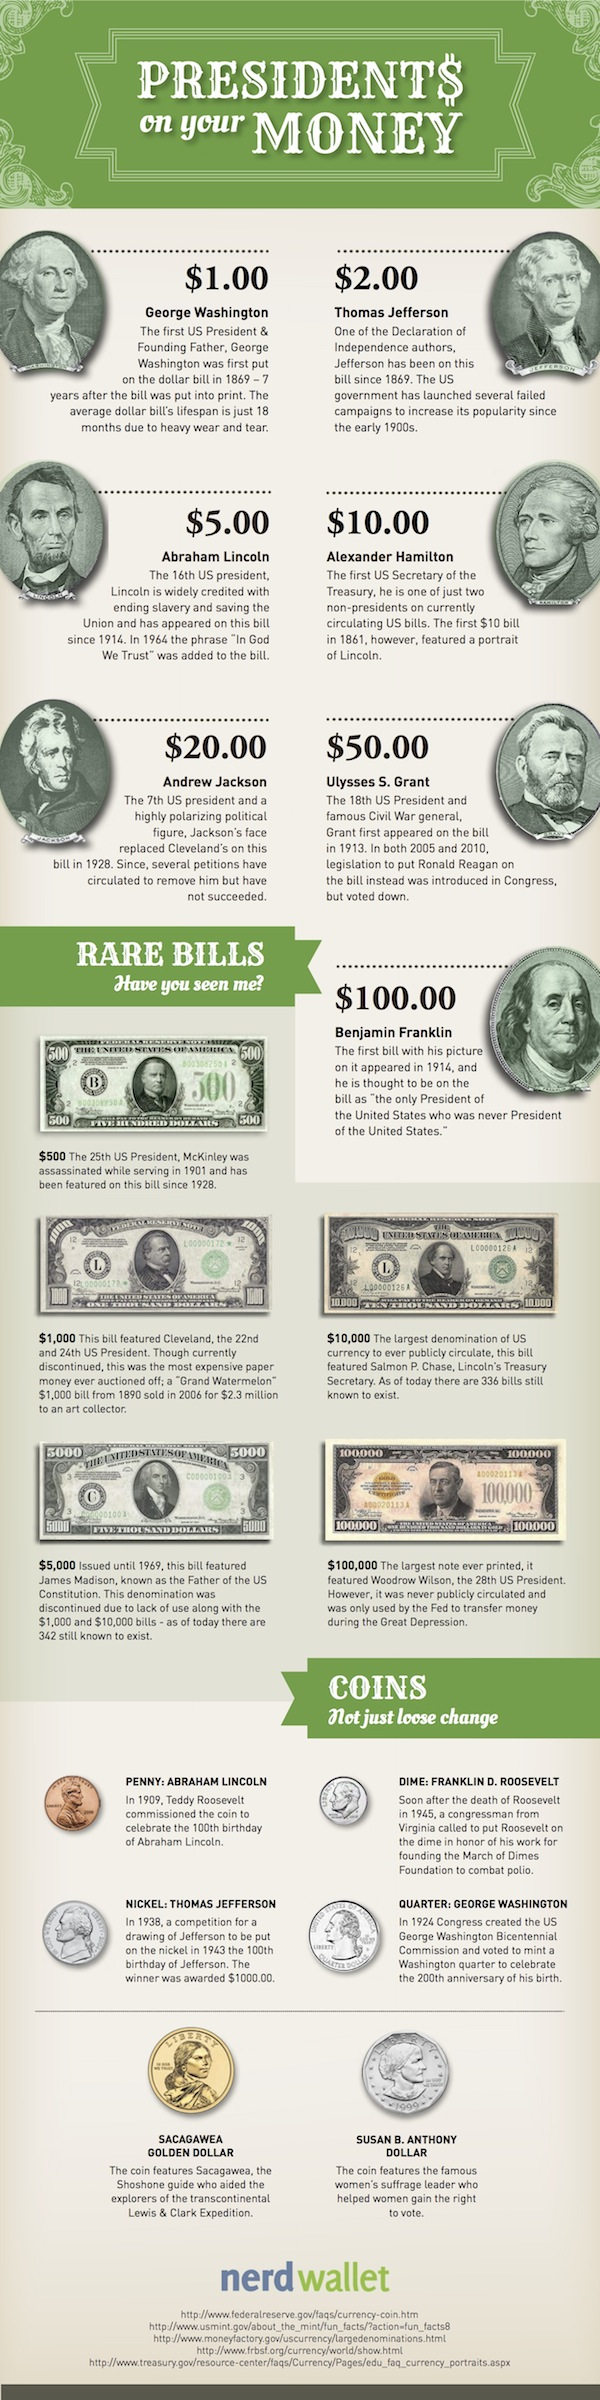 Money Presidents on Paper Currency & Coins